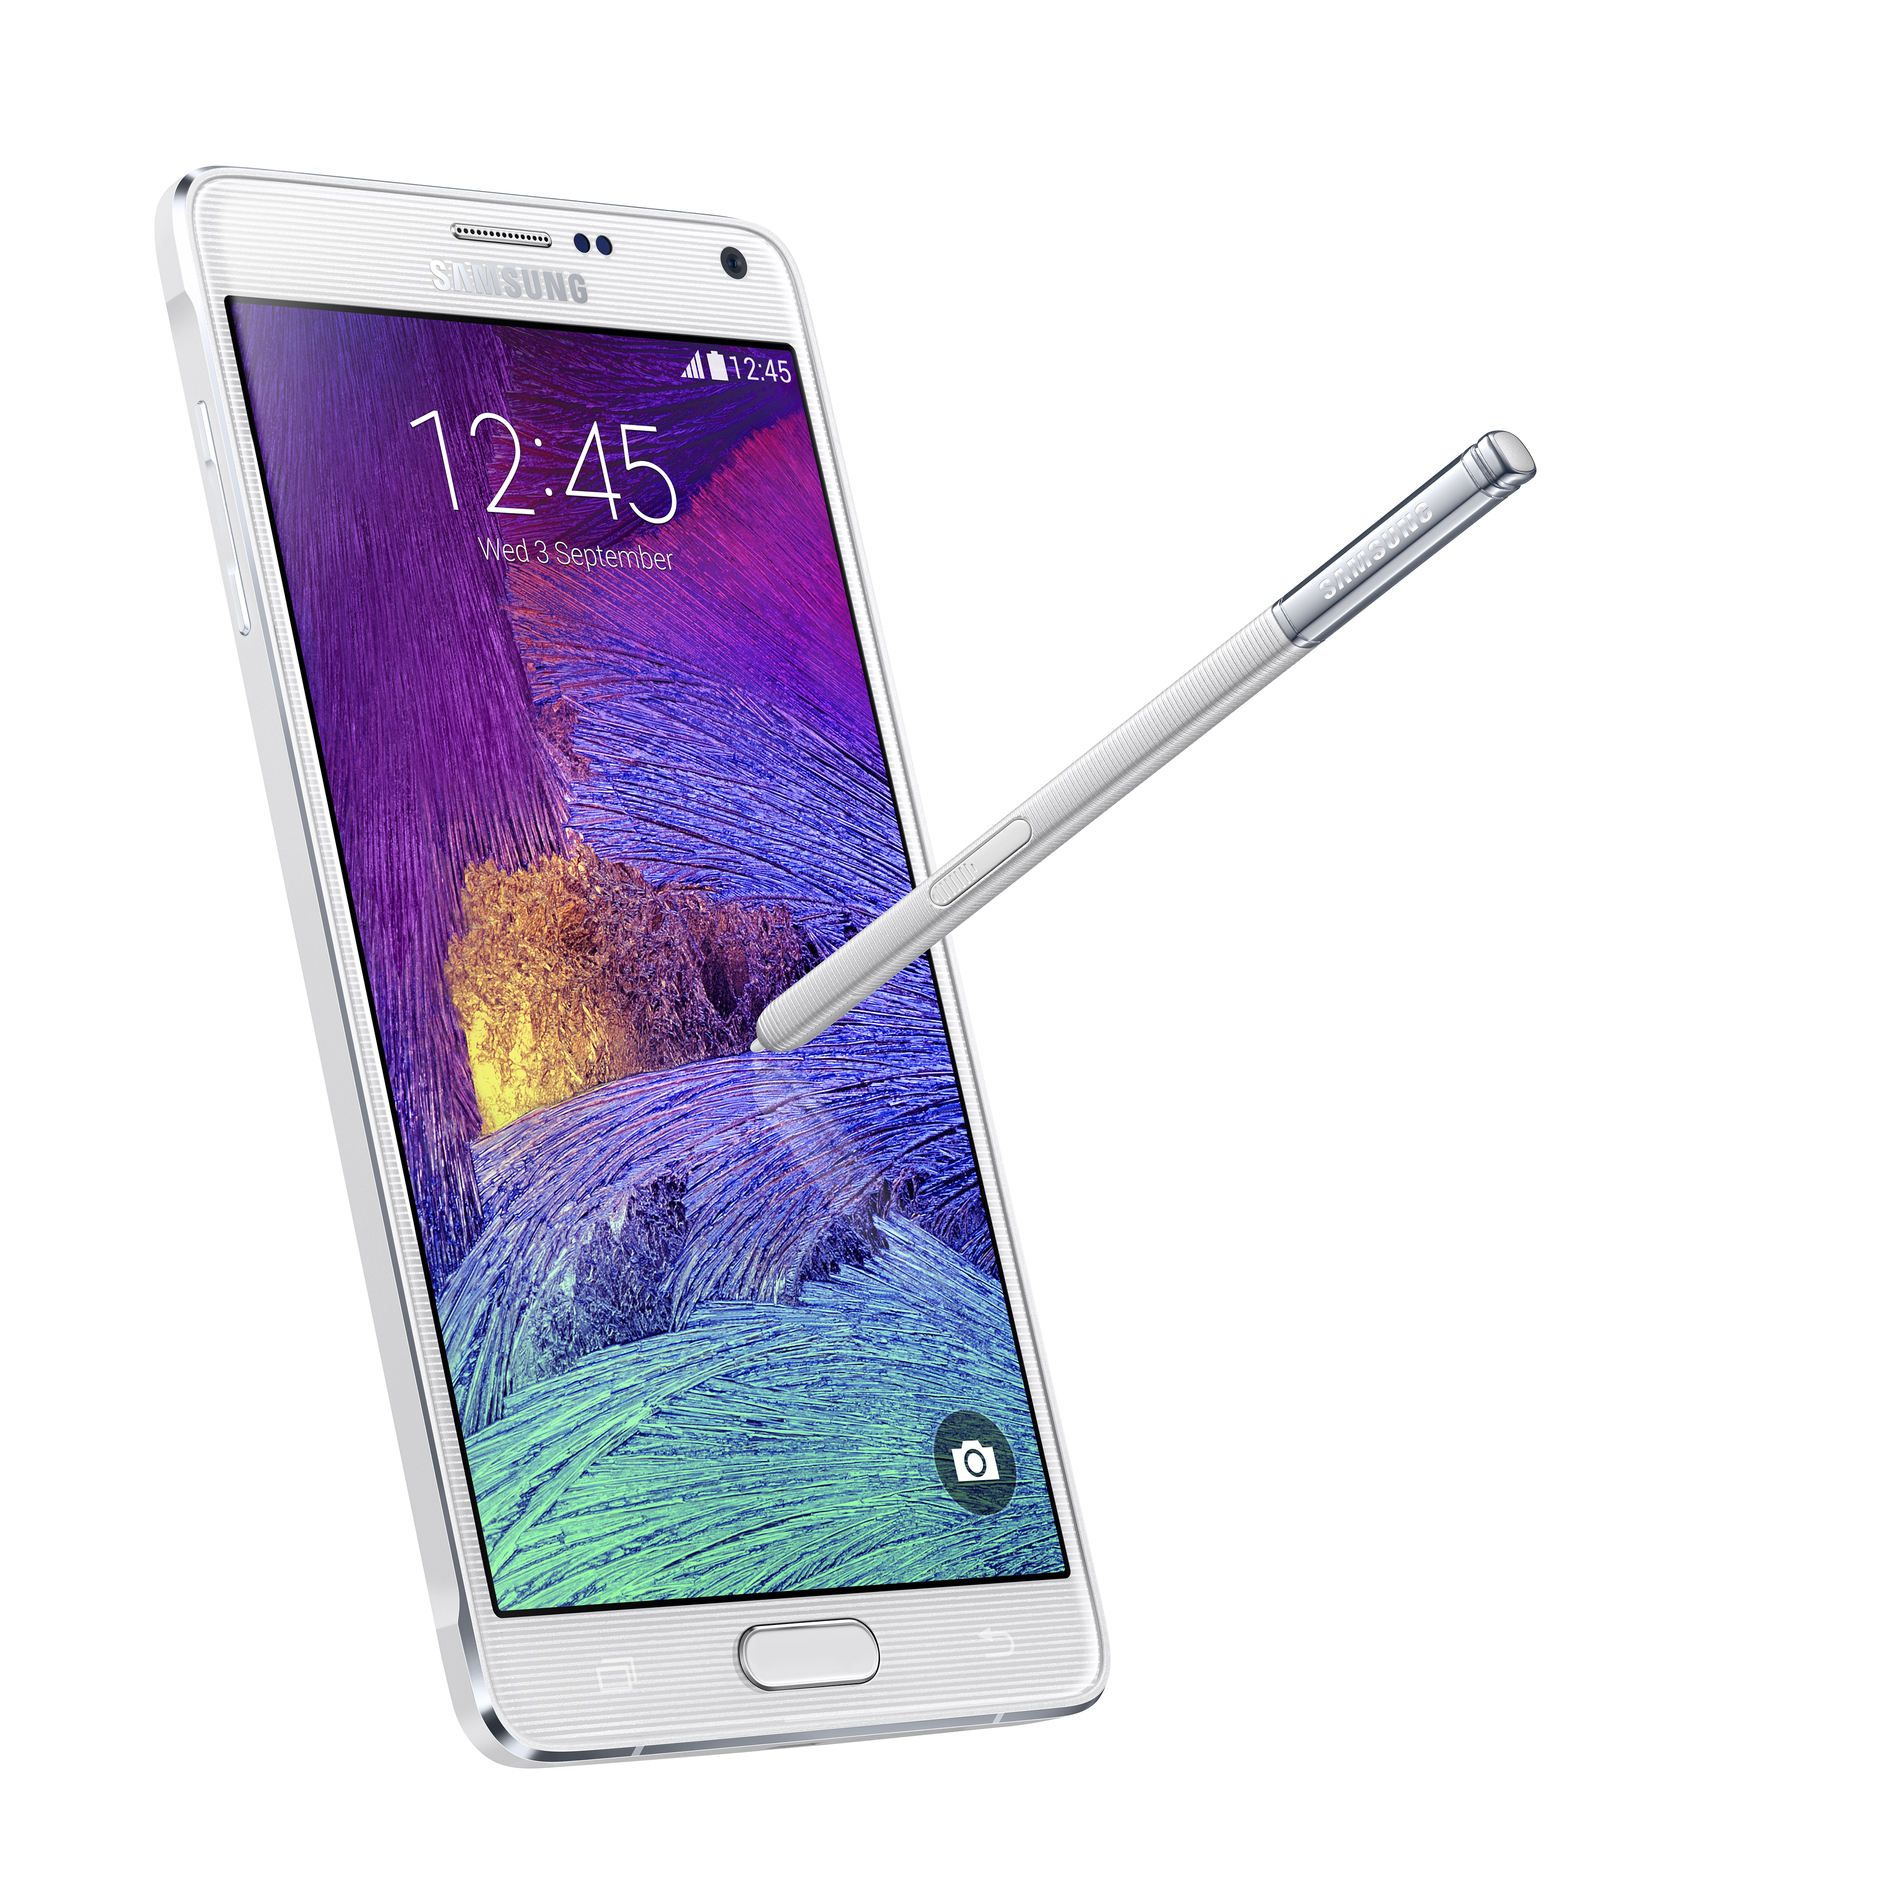 Samsung Galaxy Note 4 Best Ever Phone Made Galaxy Note 4 T Mobile Phones Iphone Screen Repair